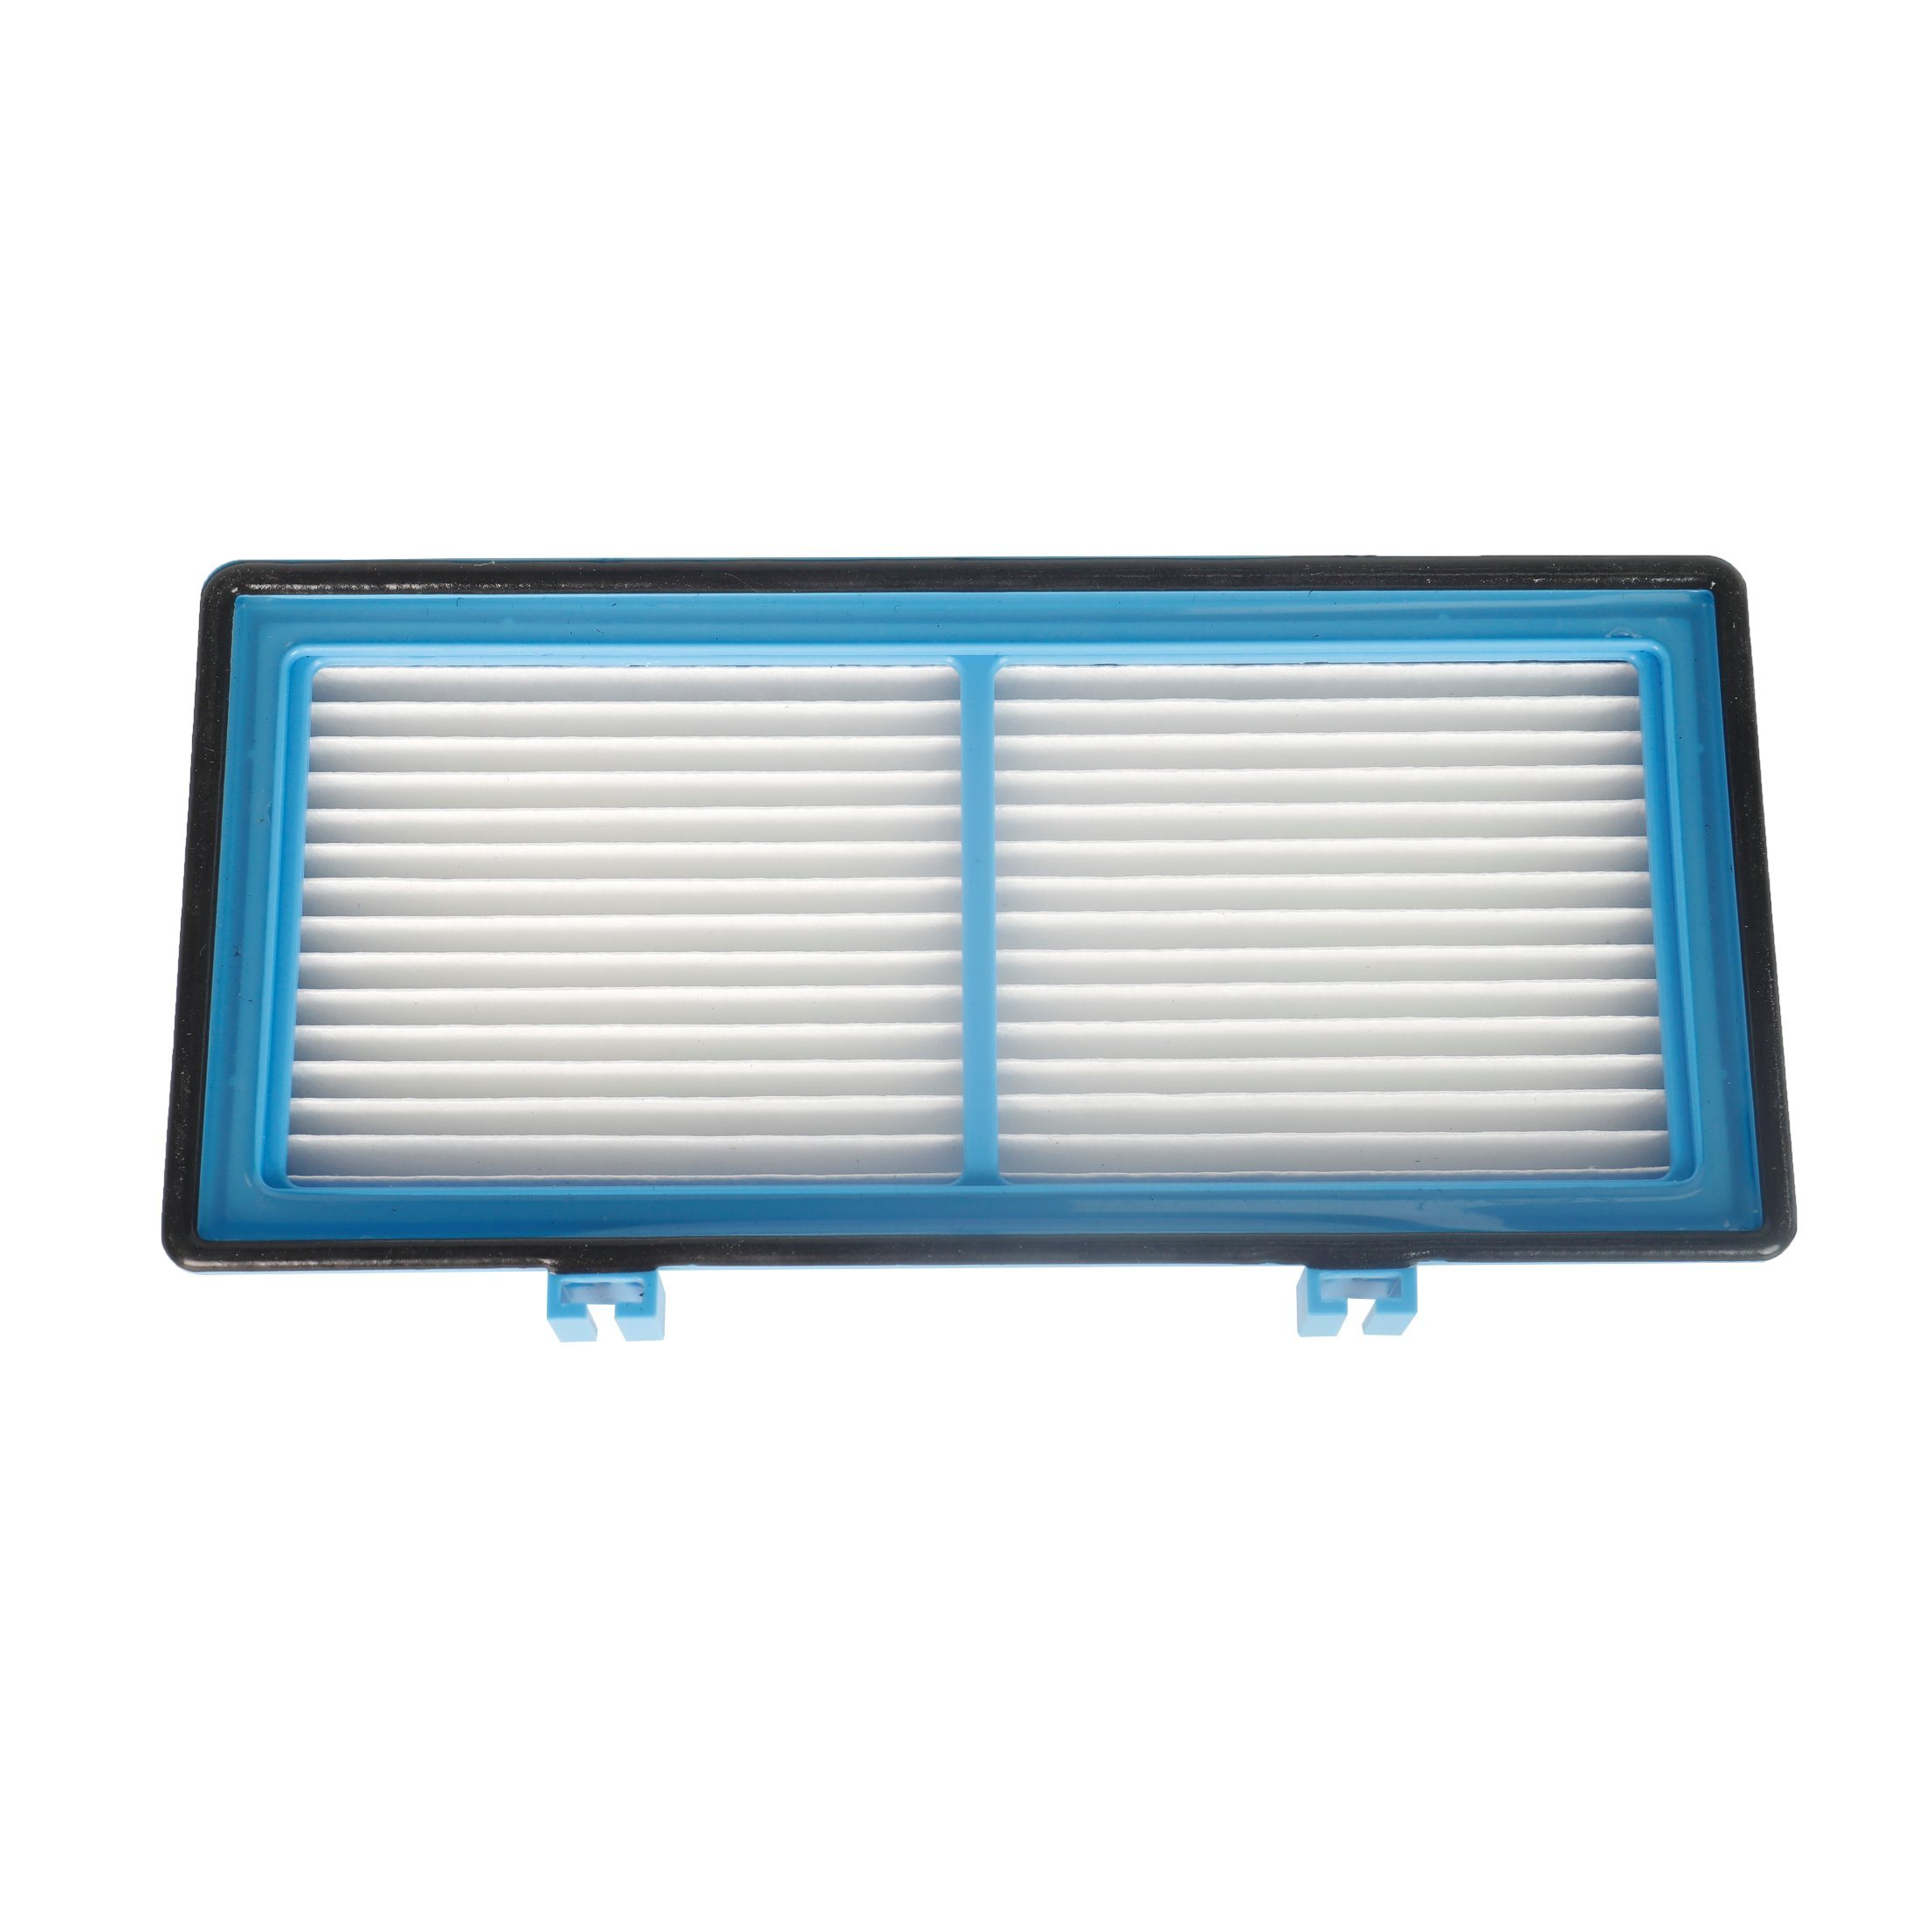 Replacement HEPA Filter for Holmes AER1 Air Filter HAPF30AT